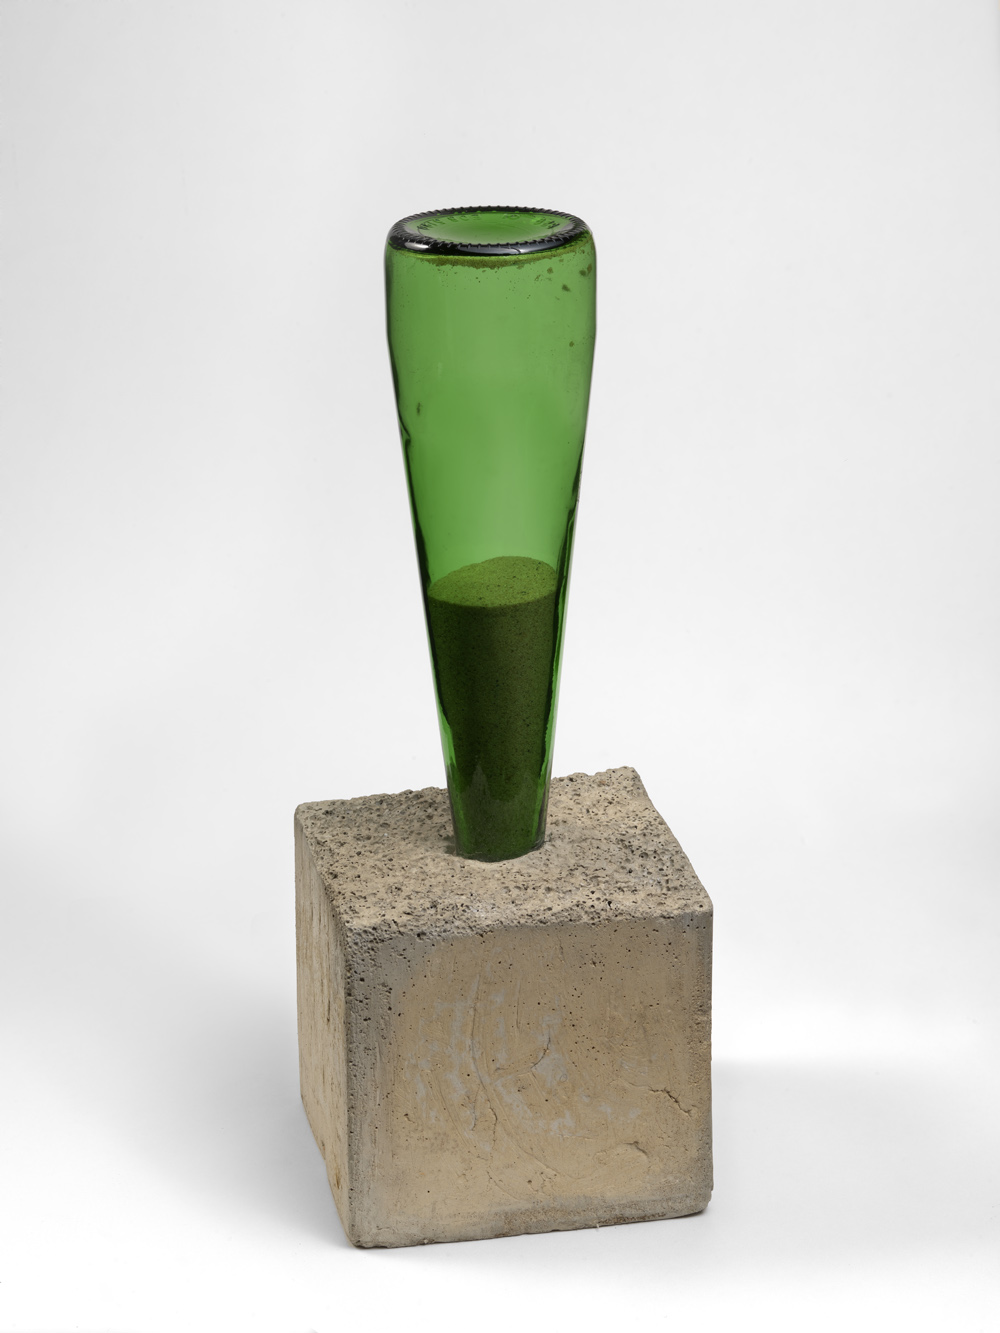 Alexandre da Cunha,  1736070909 , 2009, Concrete, sand and bottle, 37 x 13 cm, Courtesy the artist and Thomas Dane Gallery, London